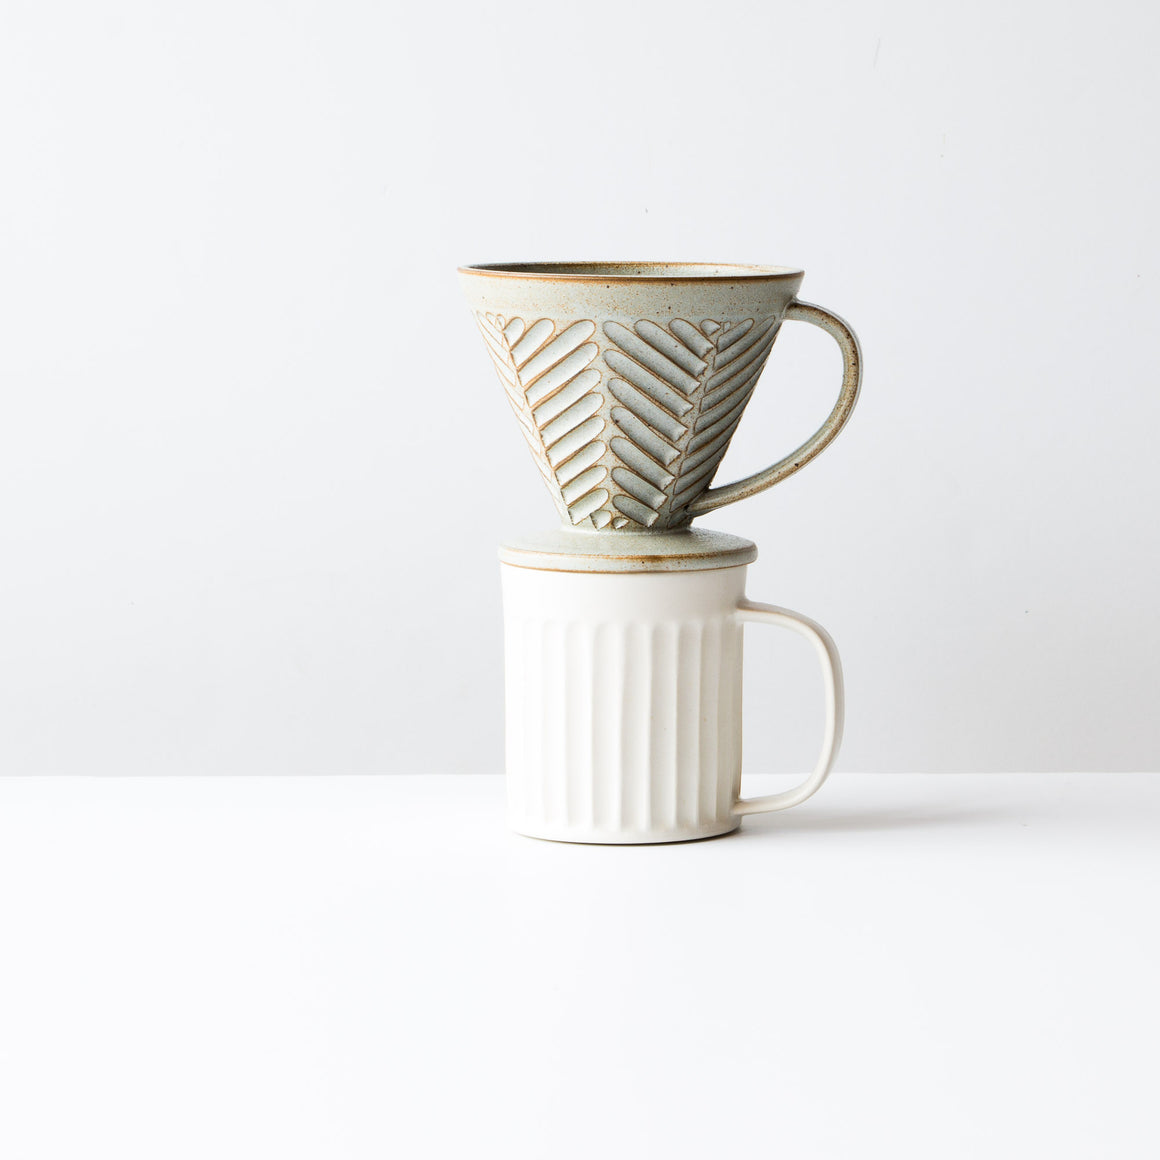 Herringbone Pattern - Handmade Ceramic Pour-Over Coffee Cone - Sold Online by Chic & Basta